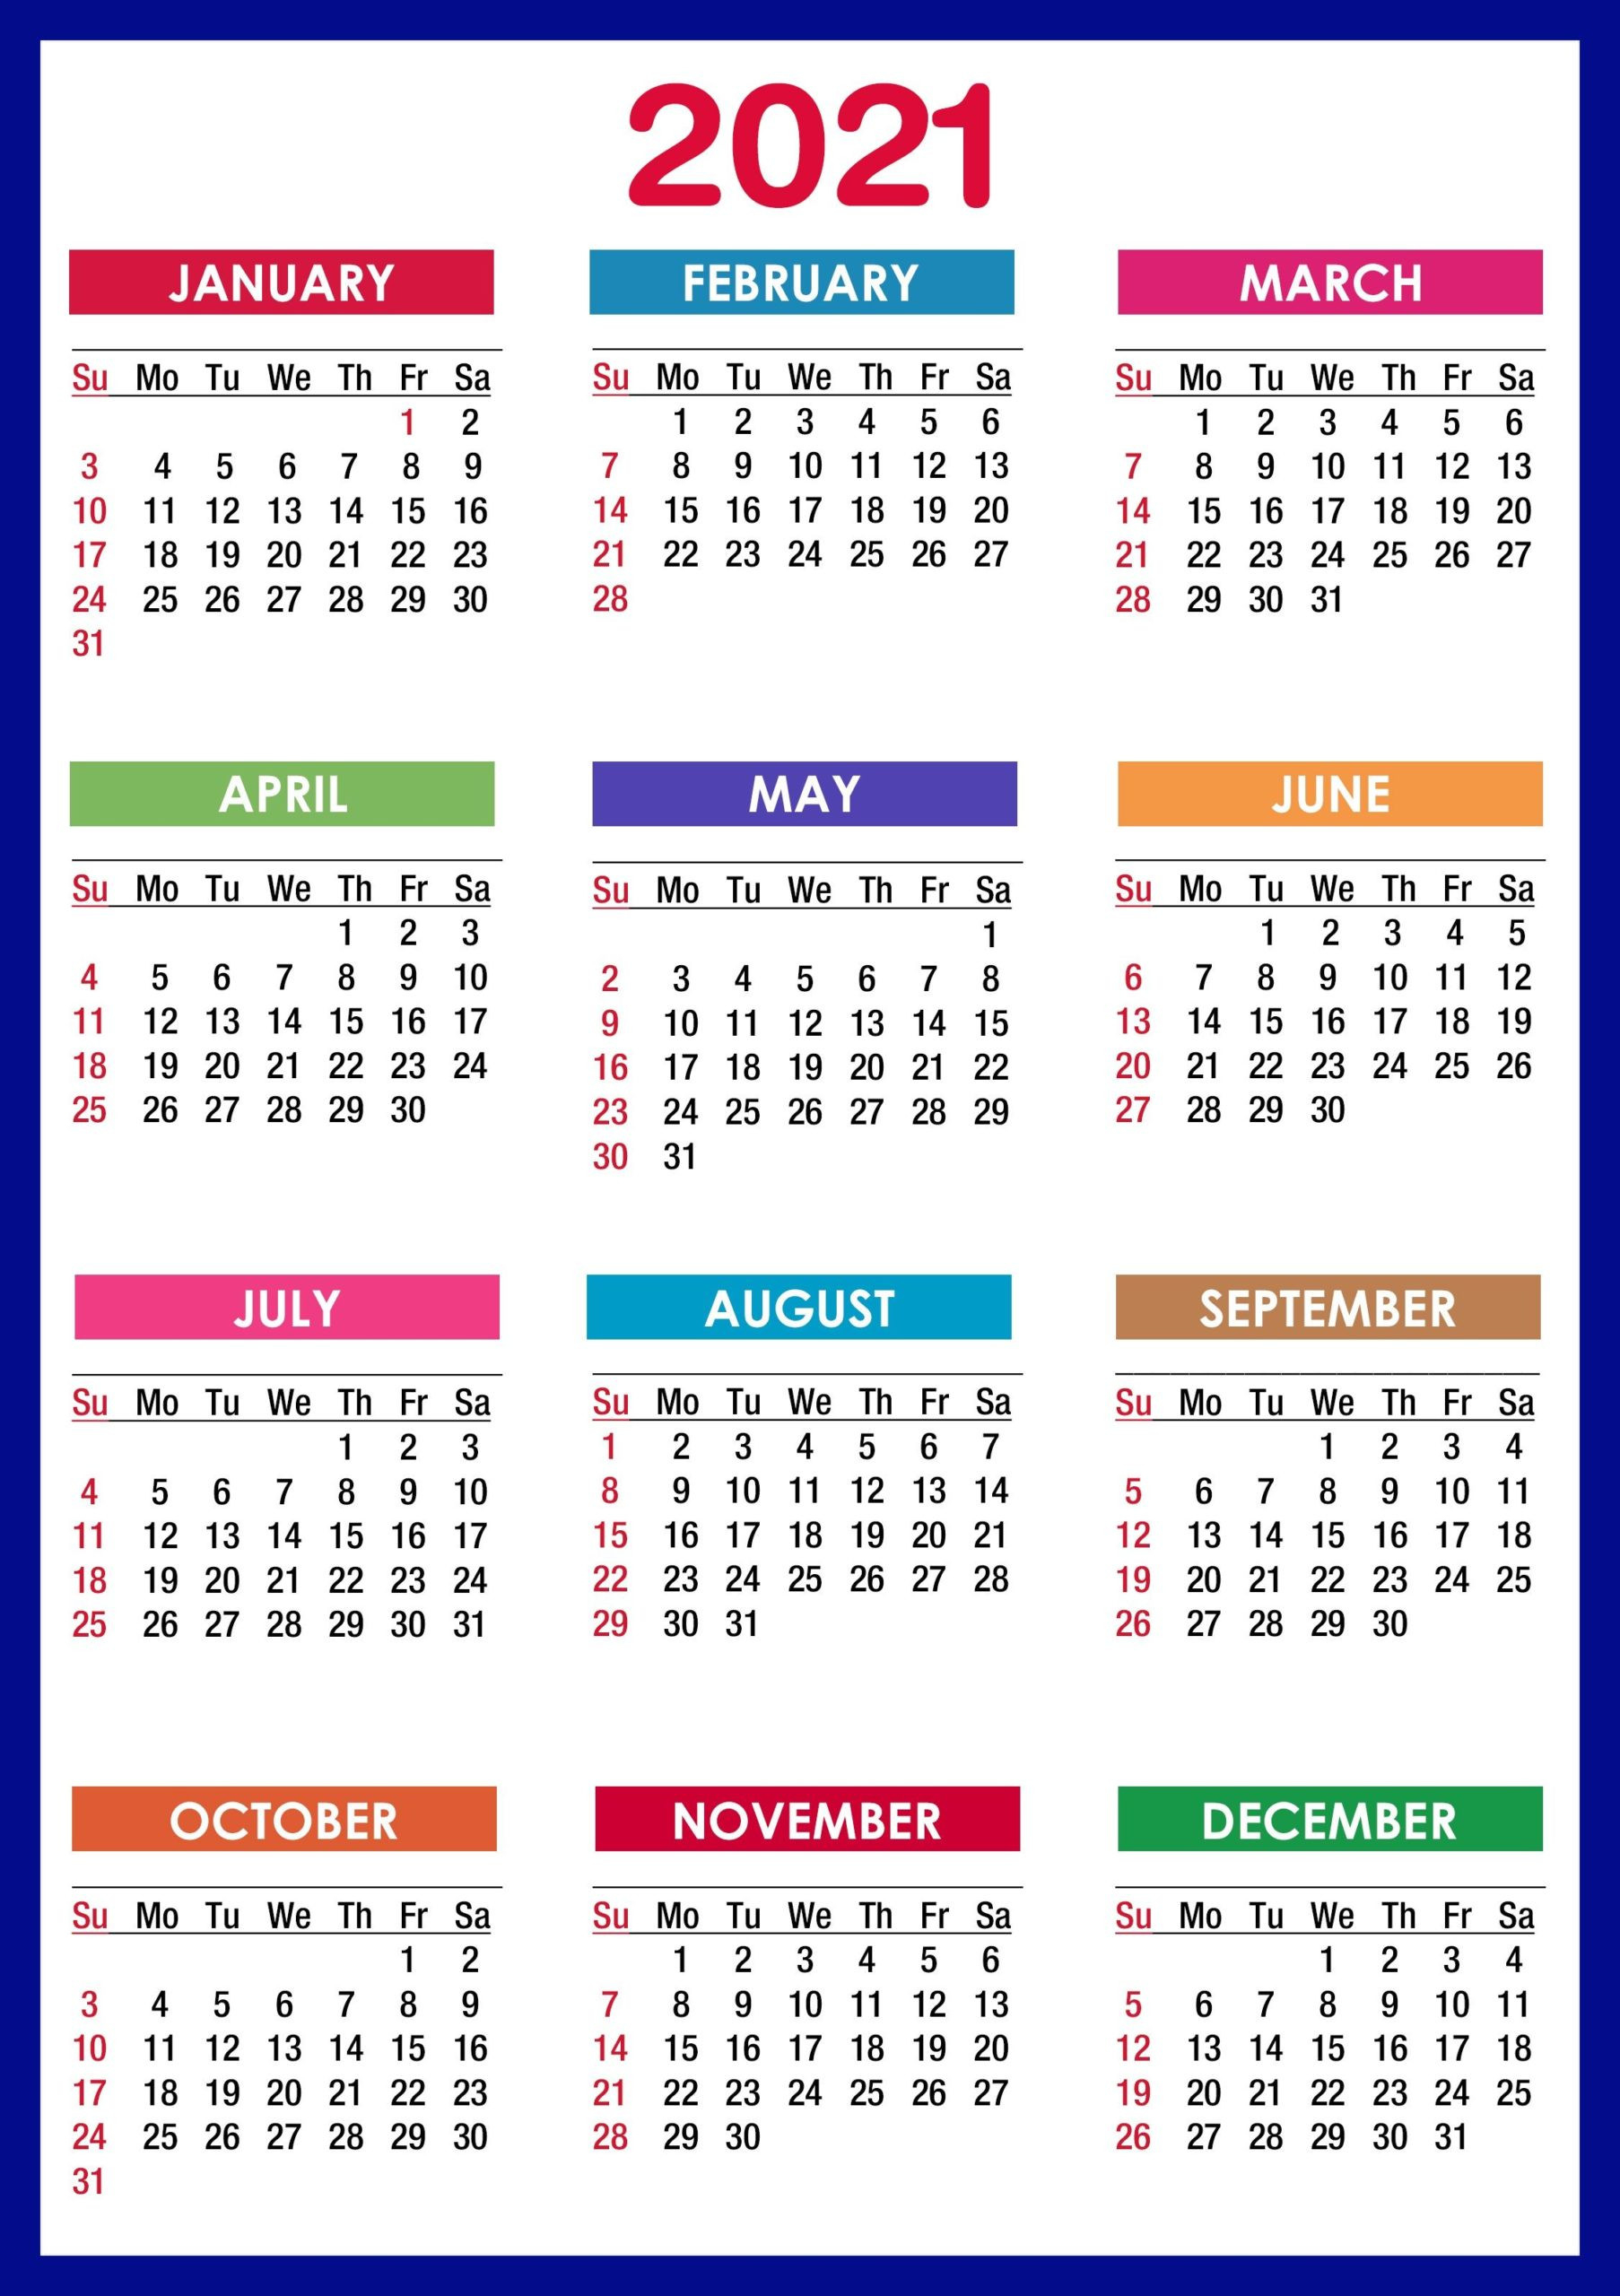 2021 Calendar Printable   12 Months All In One   Calendar 2021-Free Printable Downloadable Yearly Calendar 2021